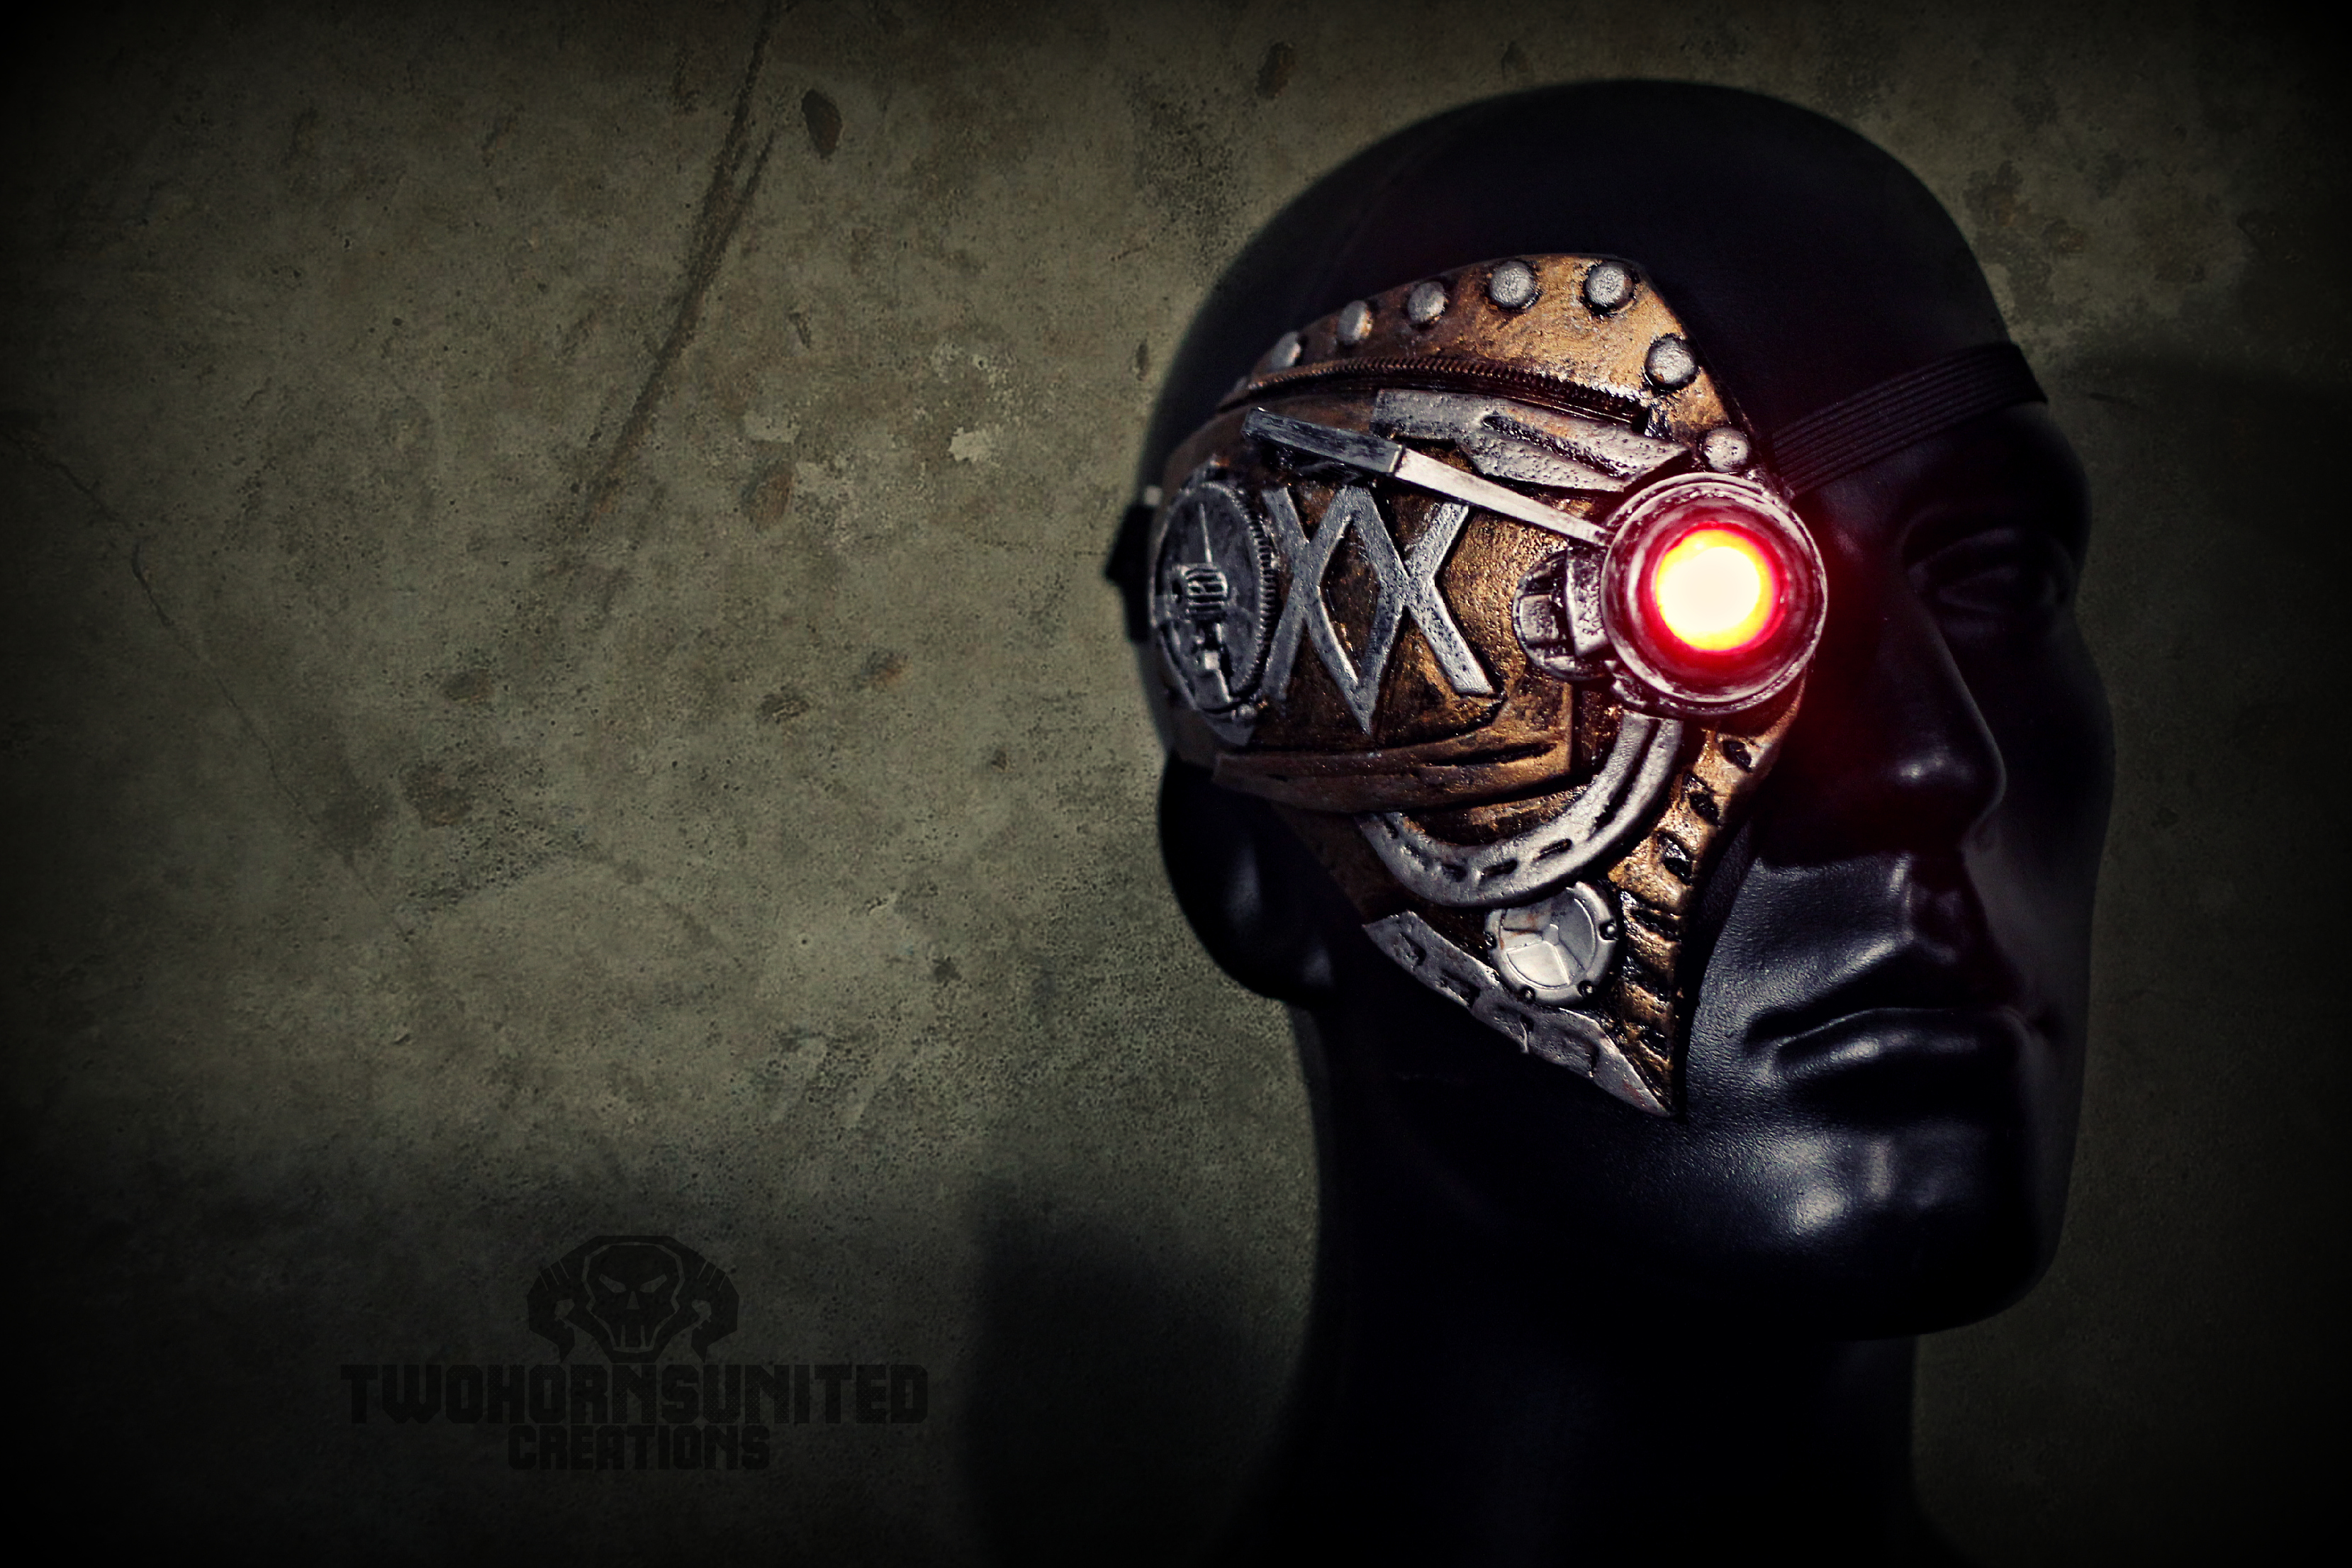 steampunk wallpaper eye - photo #22